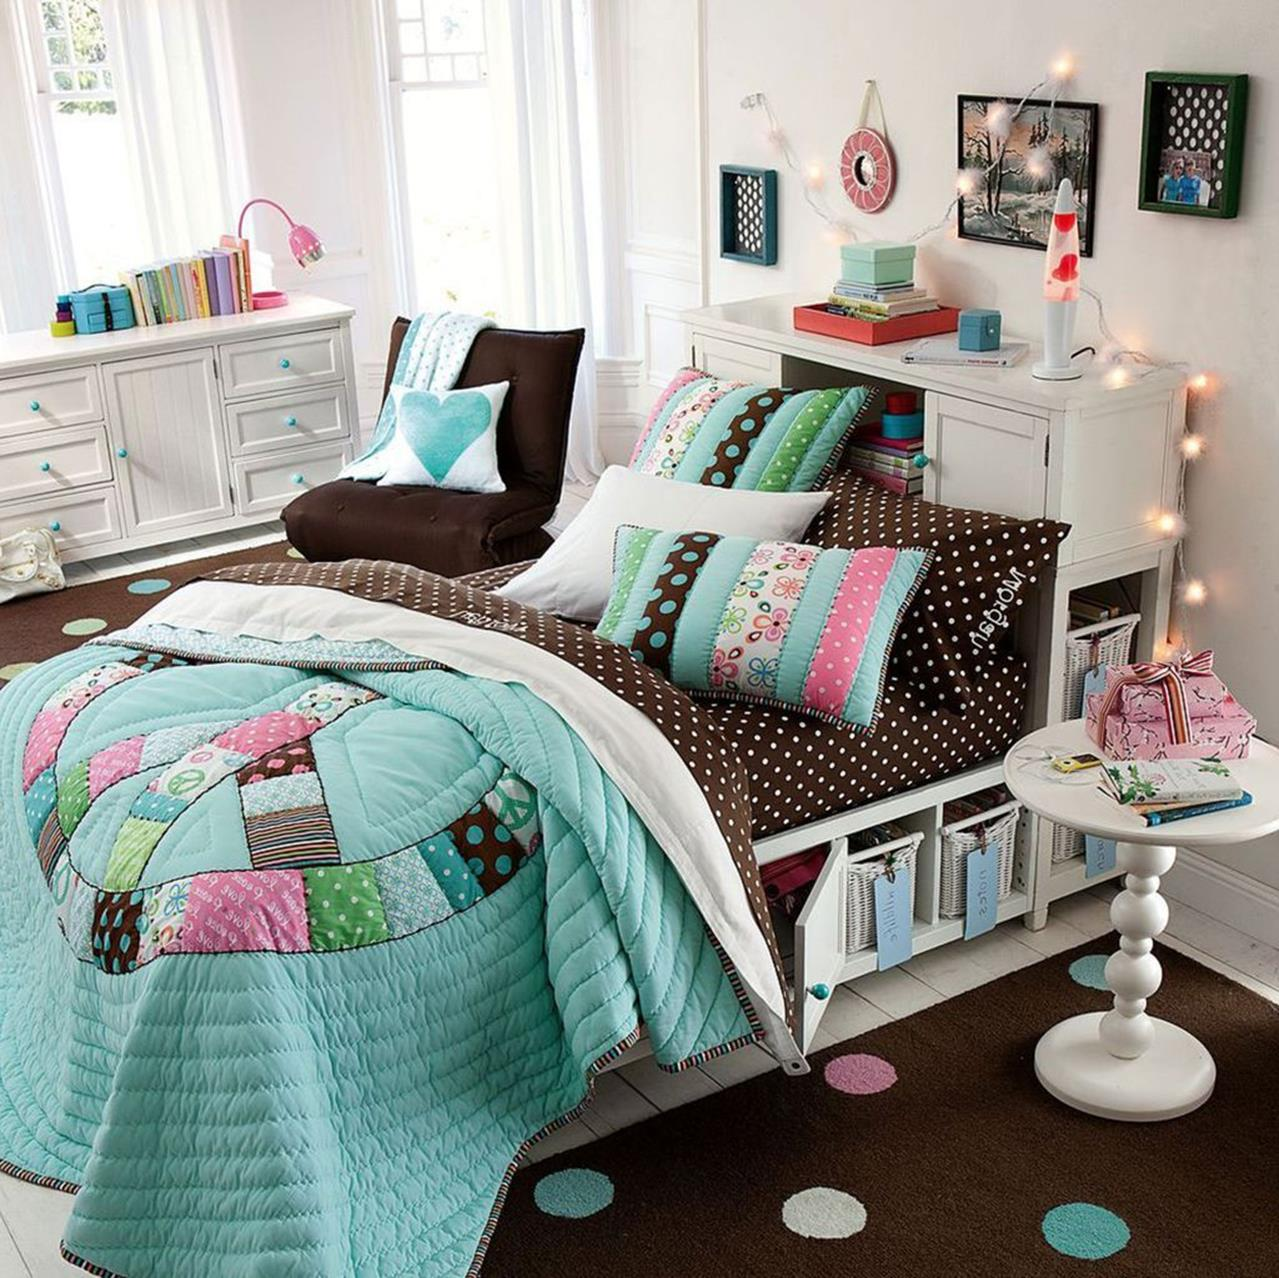 Apartments Near Me For Cheap: Brilliant Ideas Cheap Ways To Decorate Apartment 24